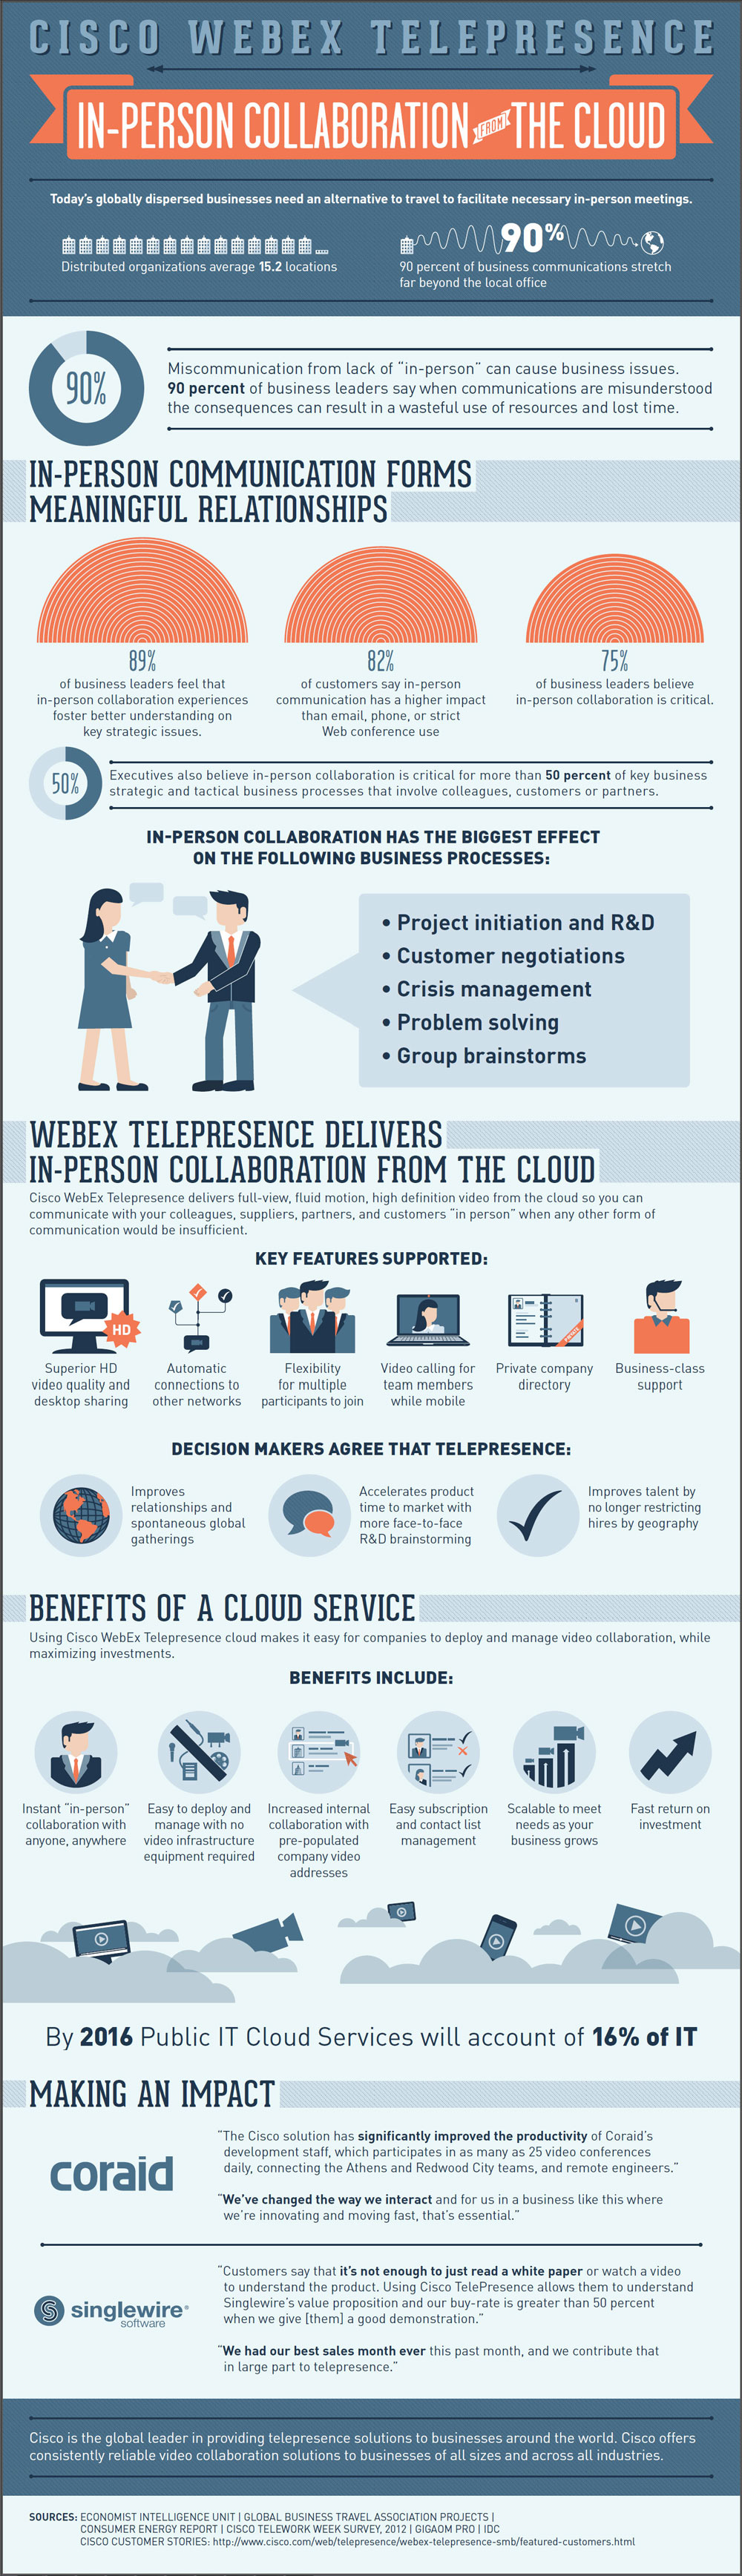 In-Person Collaboration from the Cloud